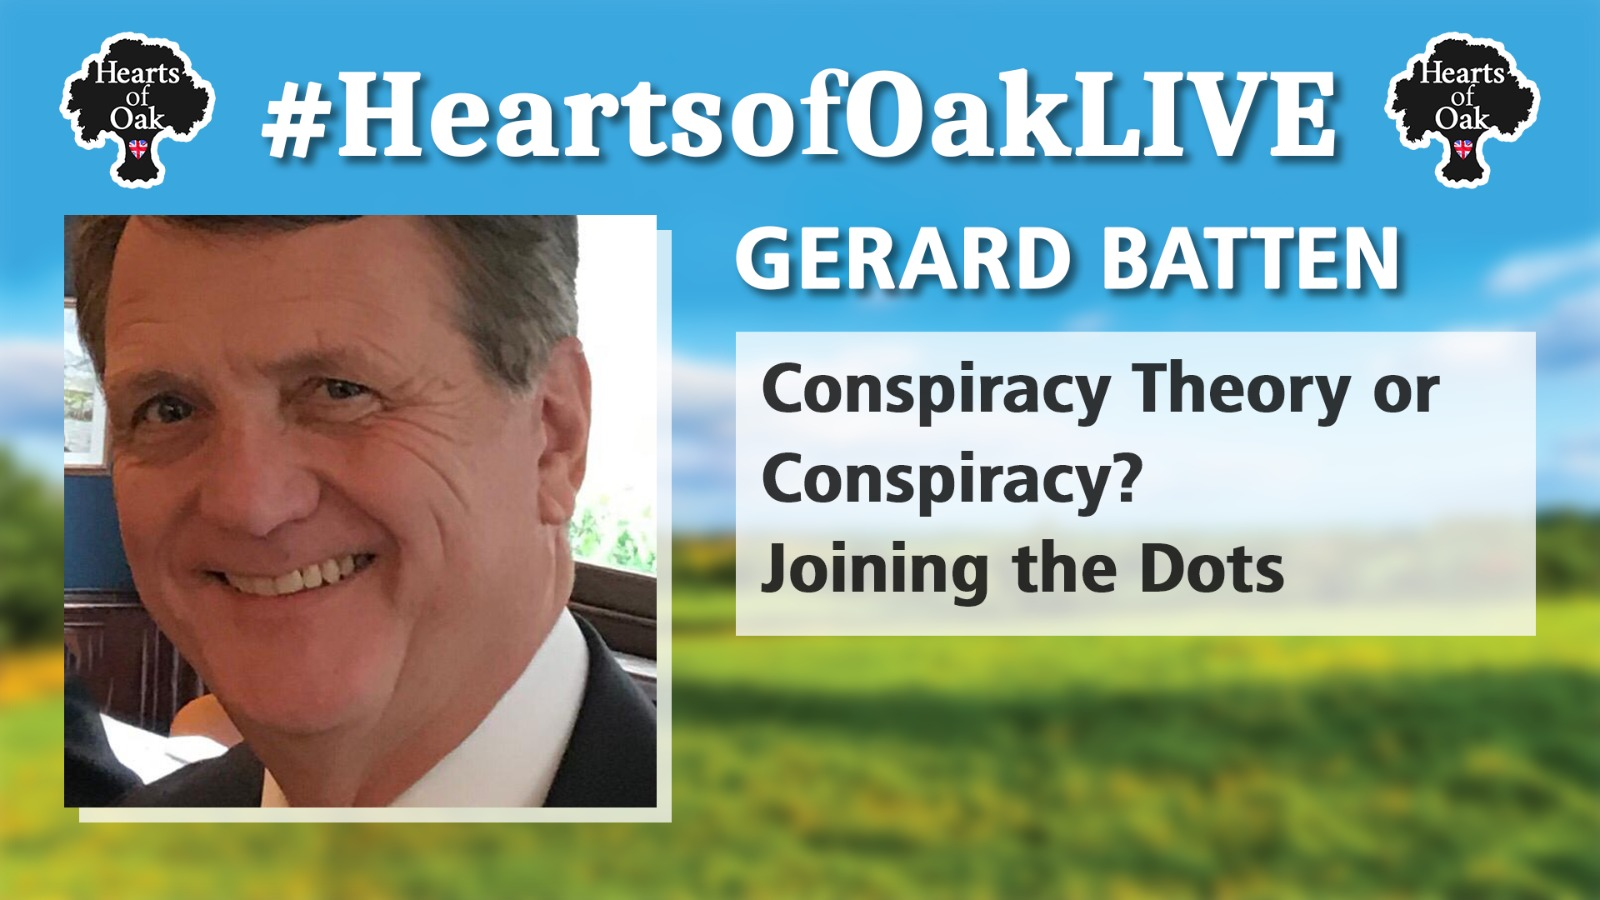 Gerard Batten: Conspiracy Theory or Conspiracy? Joining the Dots